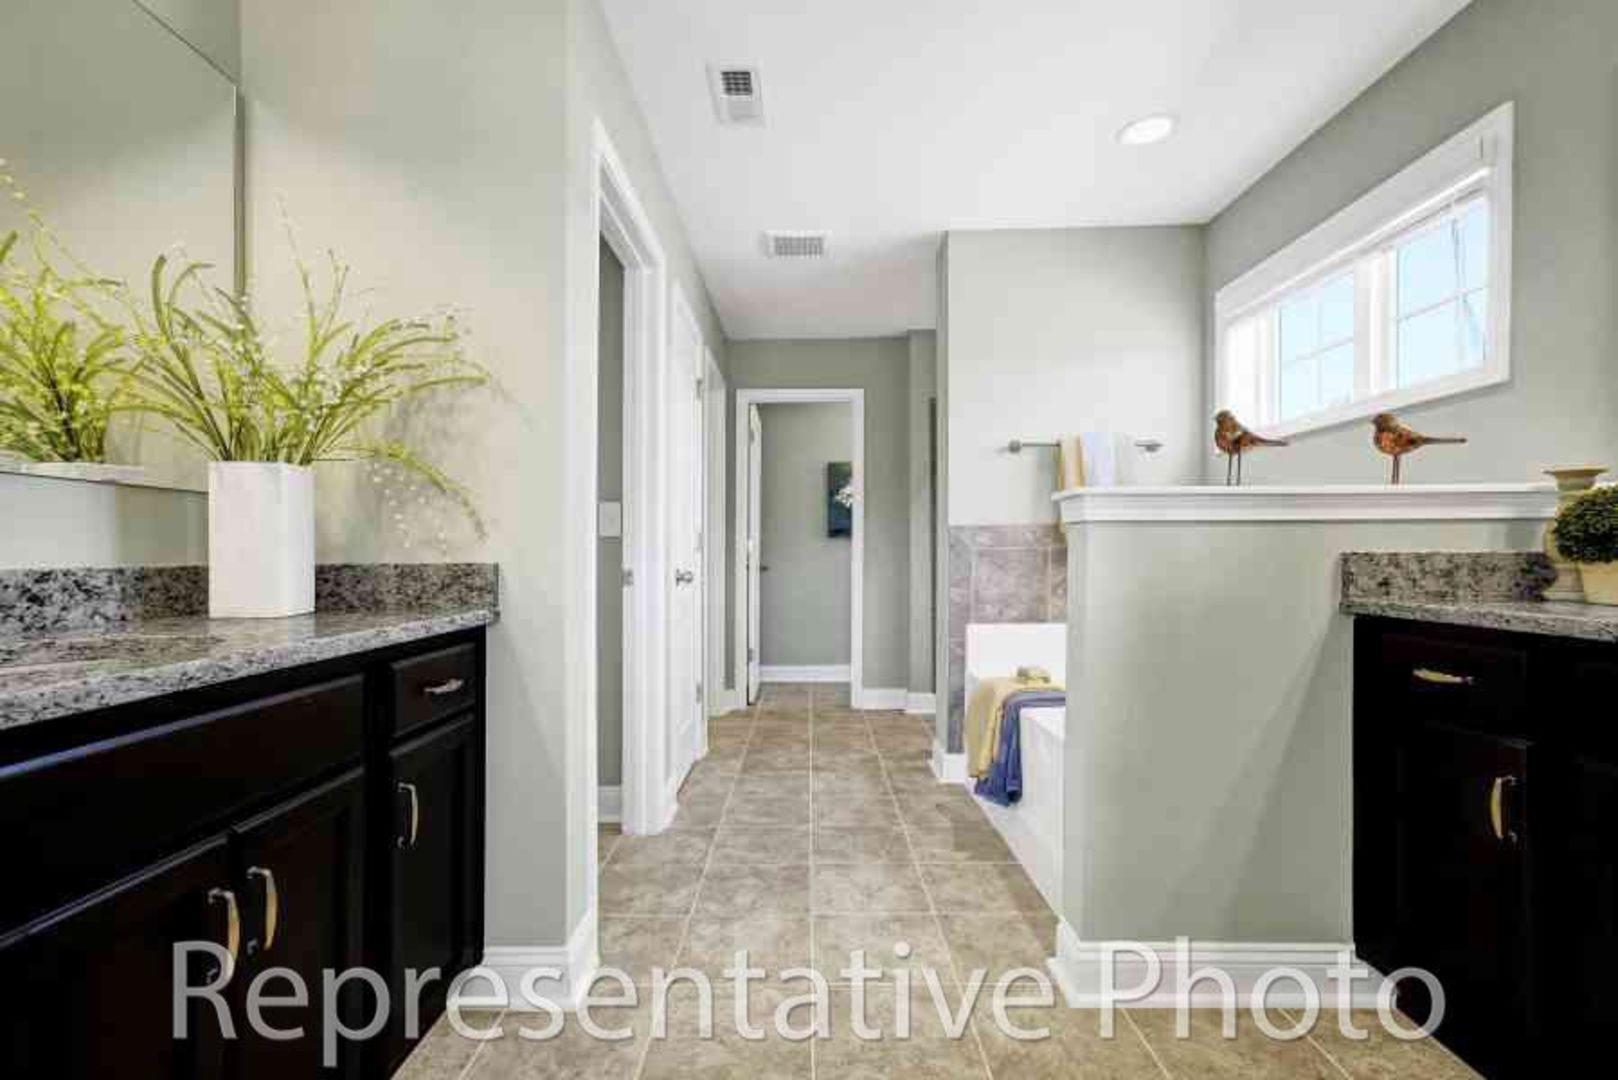 Bathroom featured in the Redbud By HH Homes in Fayetteville, NC